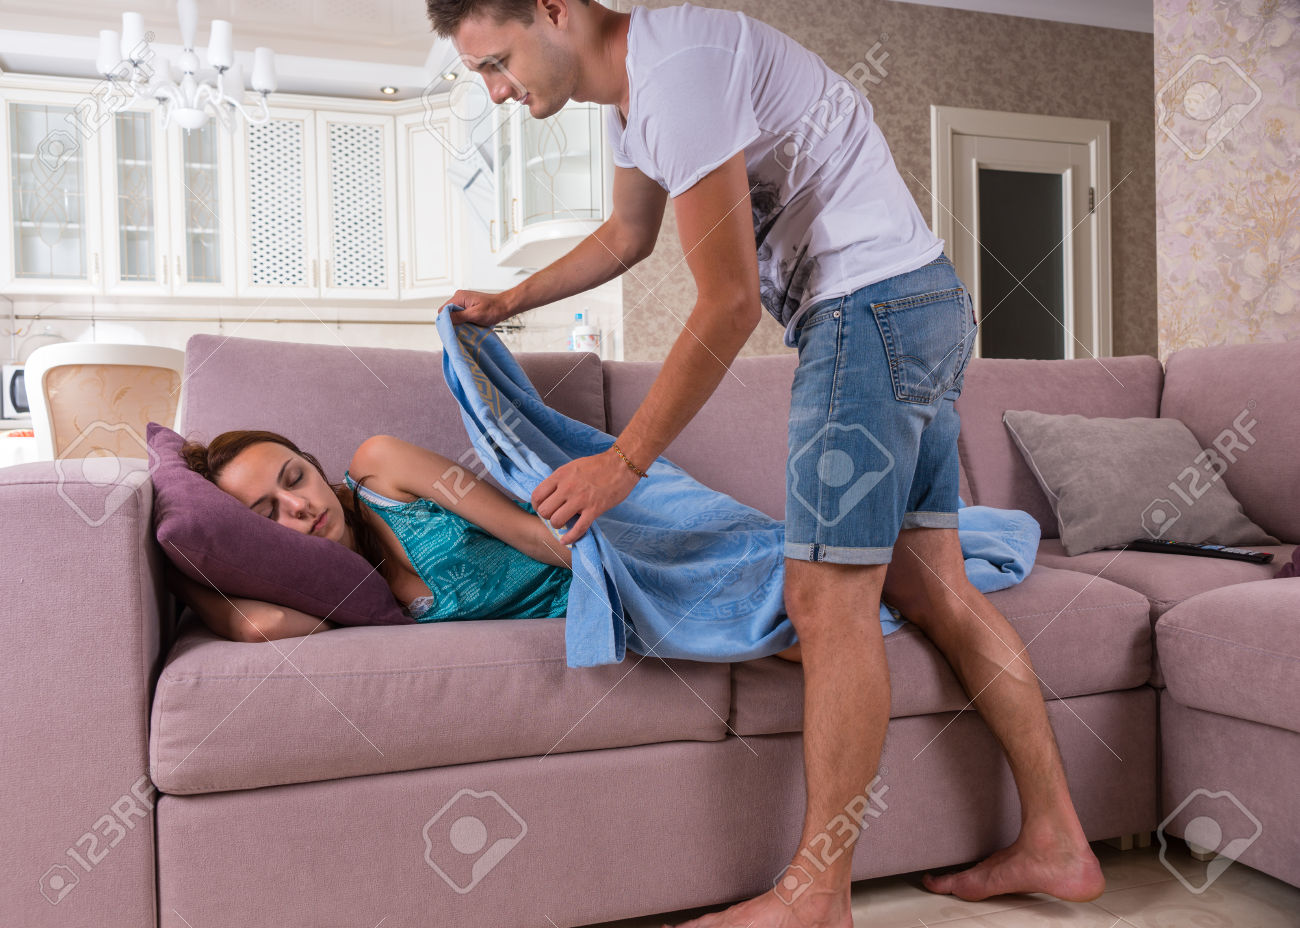 45319431-young-man-covering-up-young-sleeping-woman-with-cozy-blue-blanket-taking-care-of-woman-resting-on-so-stock-photo.jpg